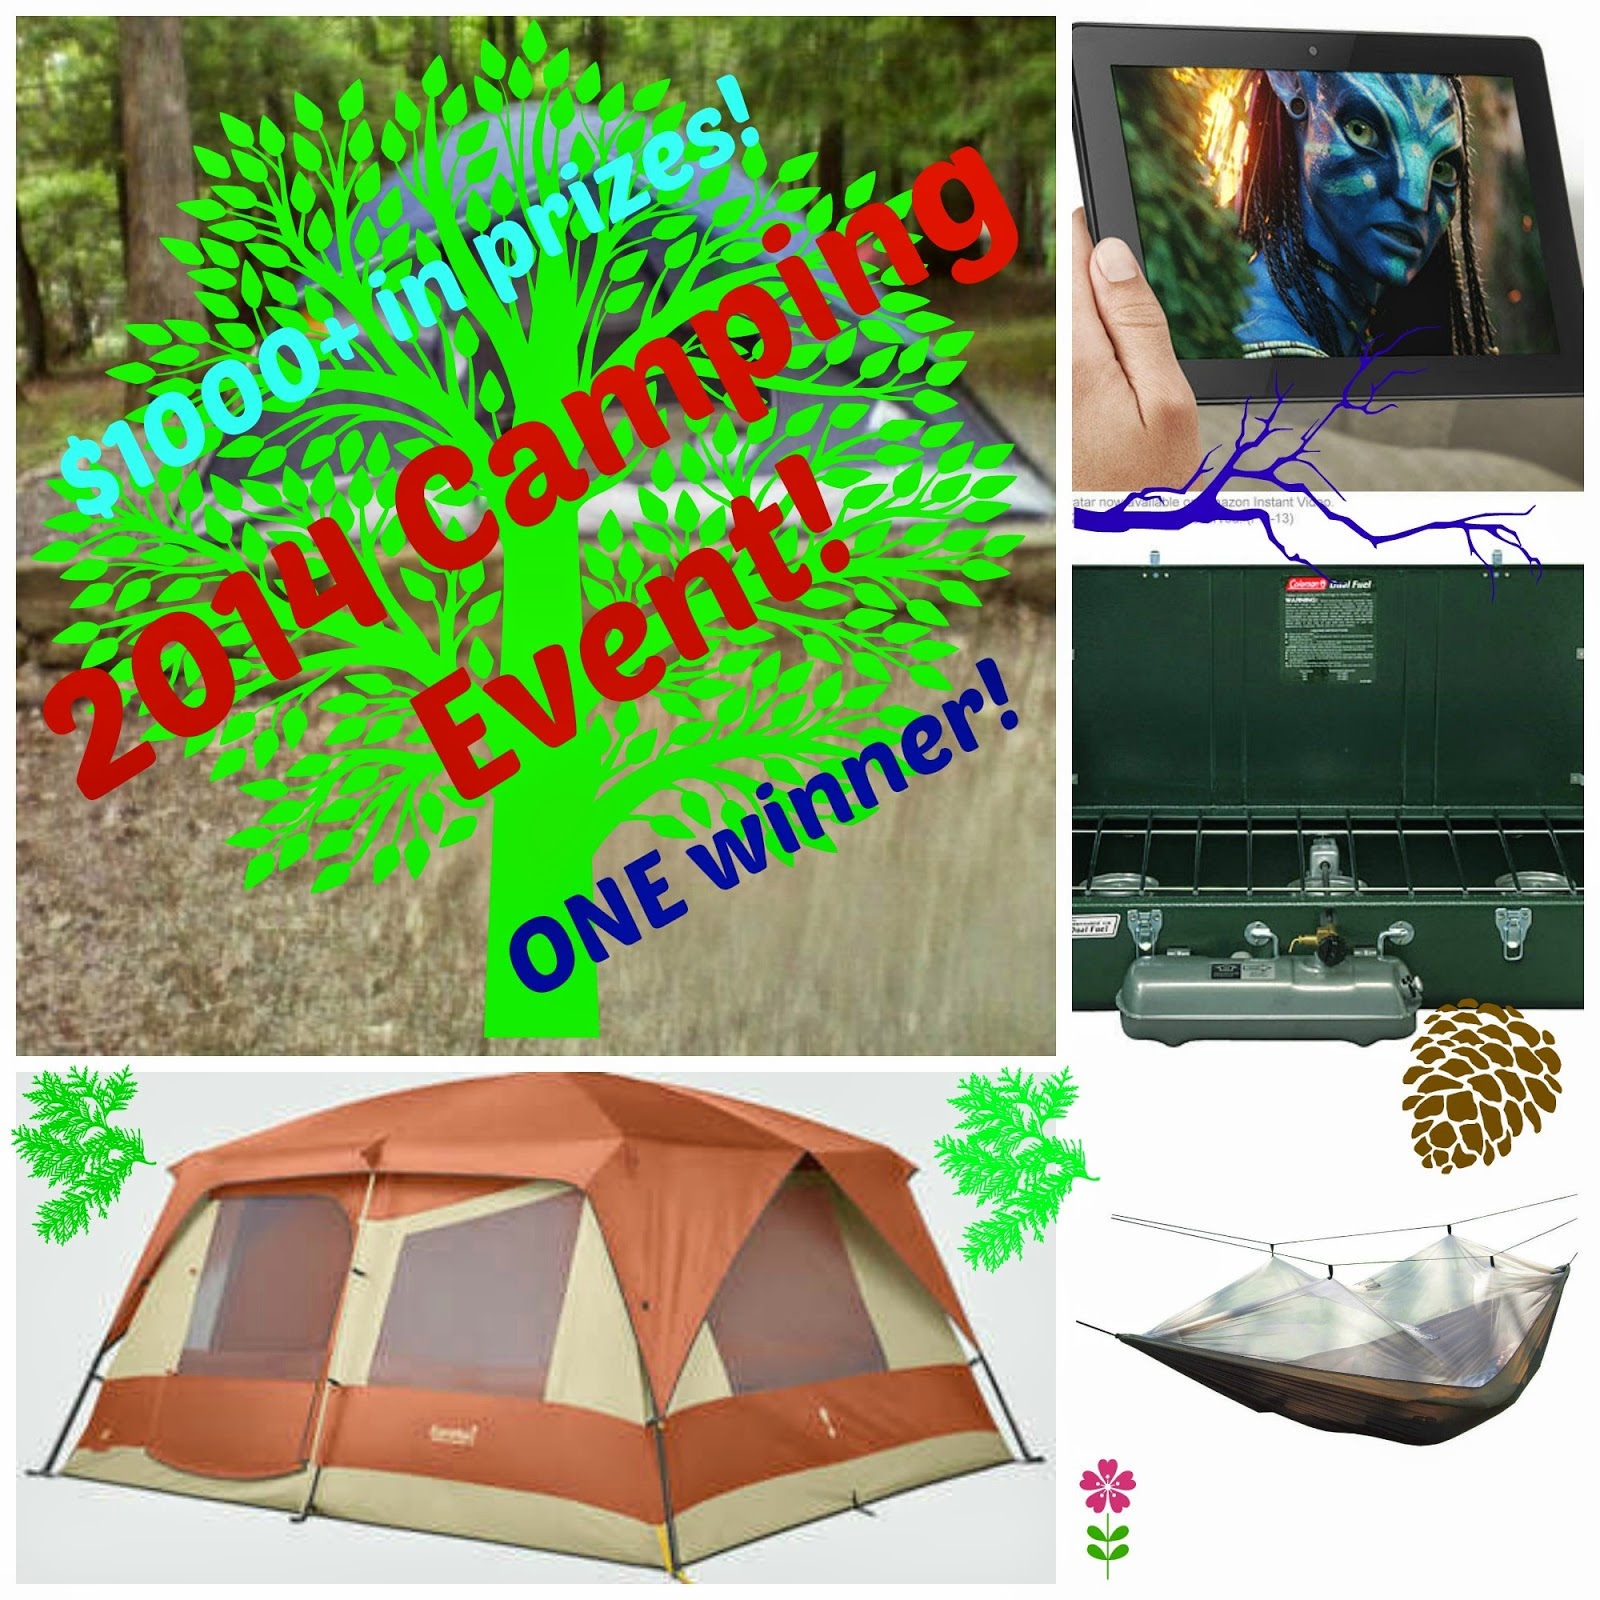 Enter the 2014 Camping Event Giveaway. Ends 7/25.